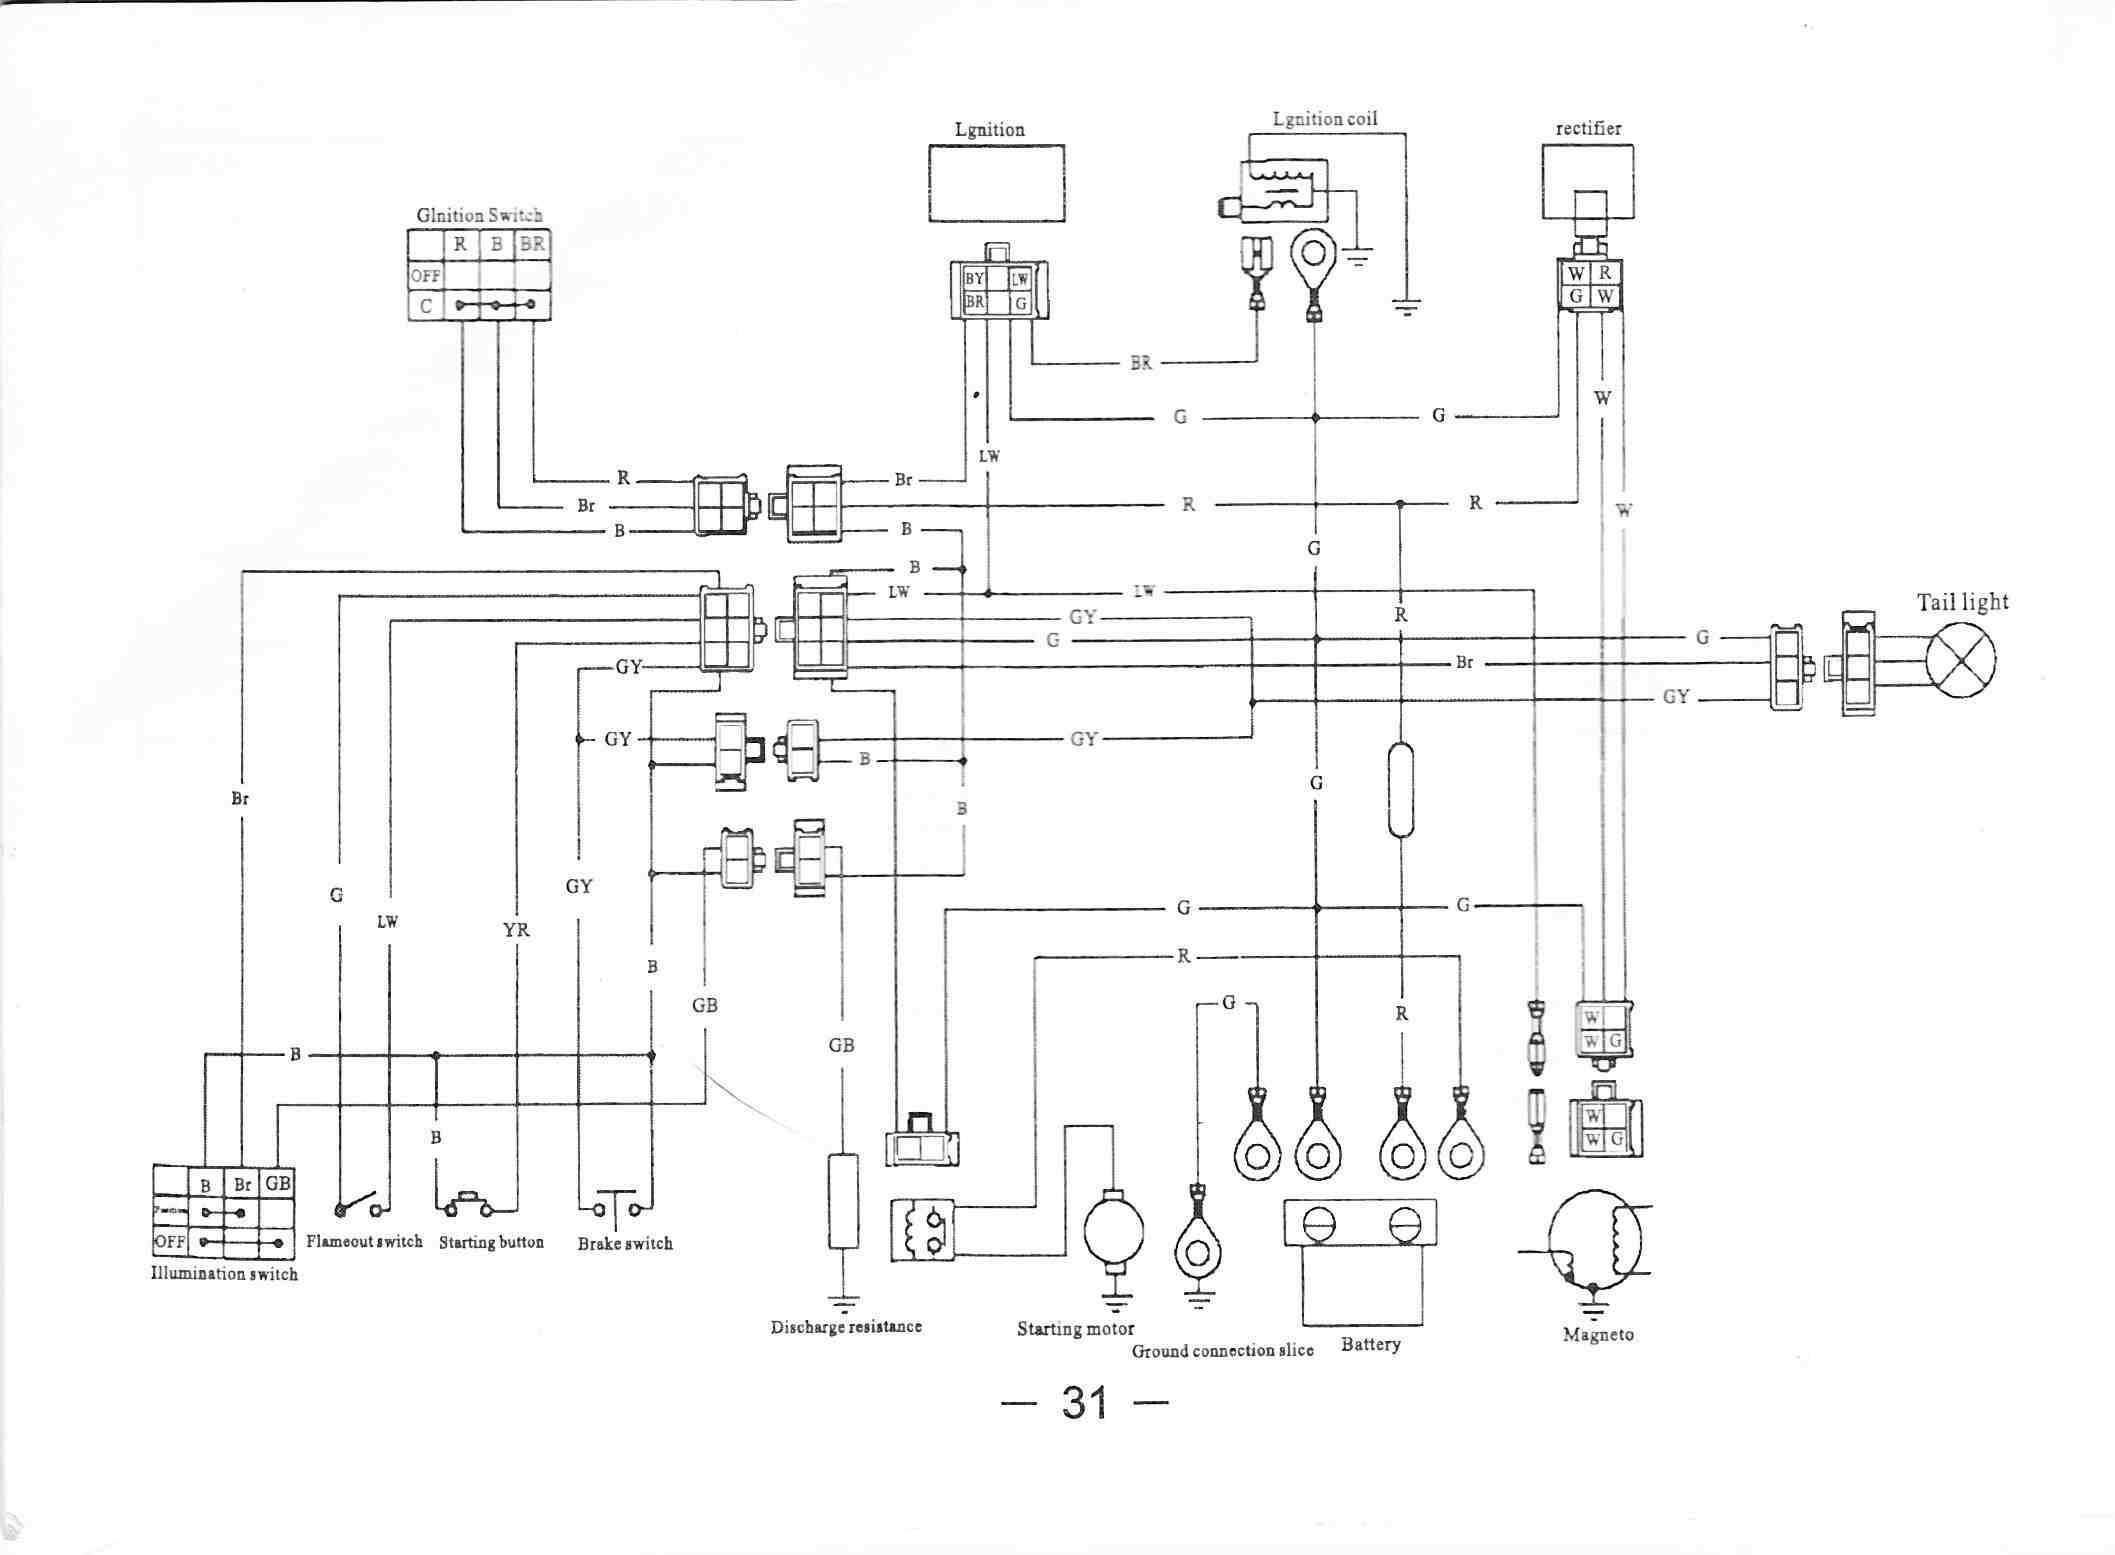 yamaha bws wiring diagram electrical work wiring diagram u2022 rh wiringdiagramshop today Yamaha Outboard Wiring Diagram wiring diagram yamaha bws